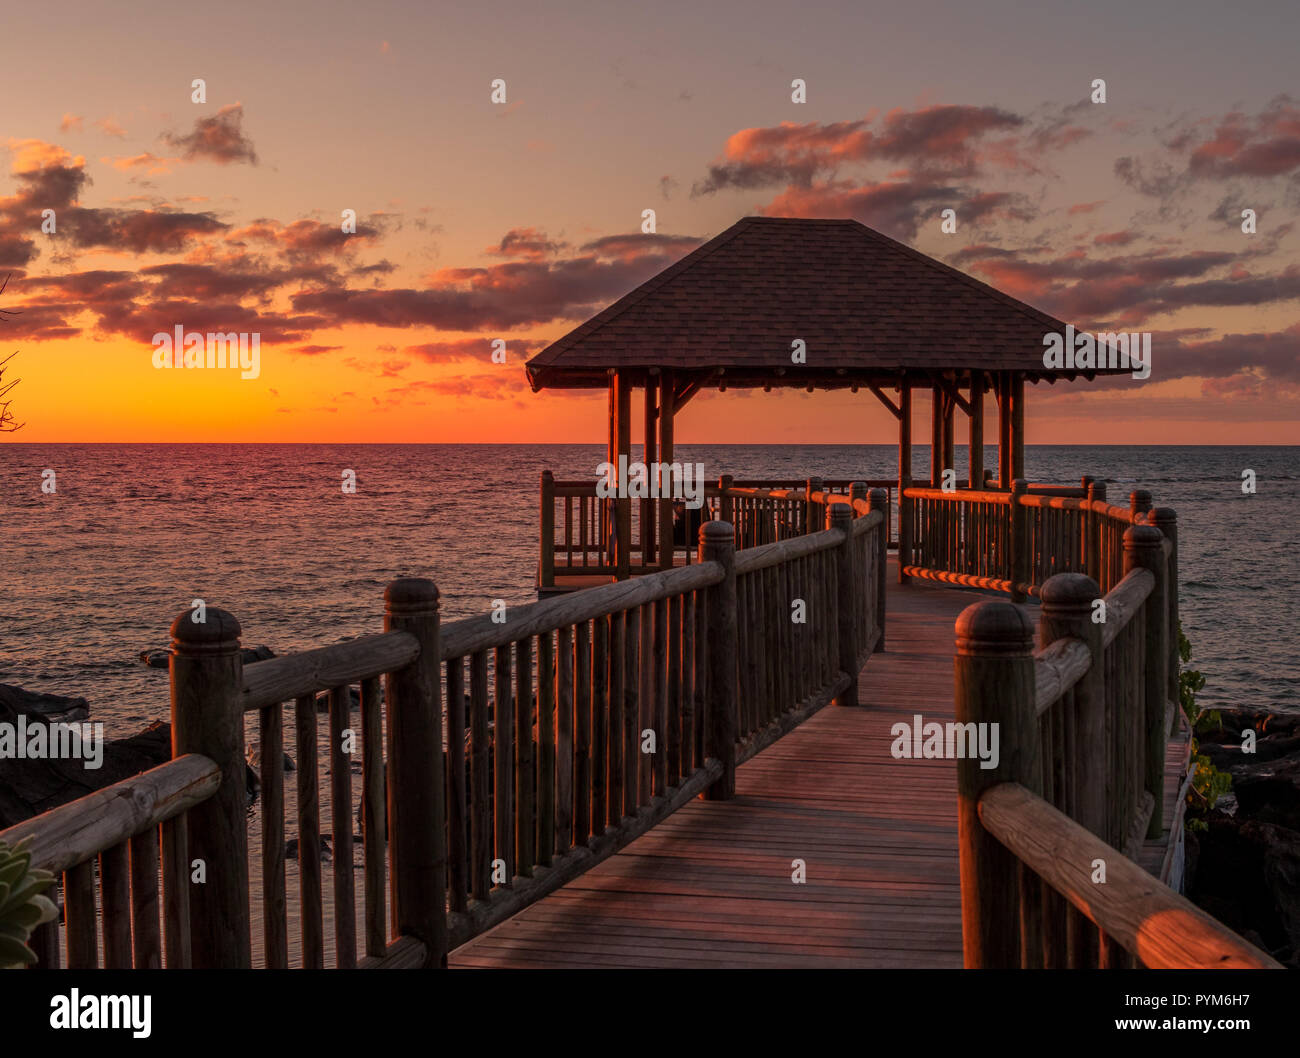 Balaclava, Mauritius - Sunset over the wooden deck at the Westin Turtle Bay Resort and Spa on the island image with copy space - Stock Image